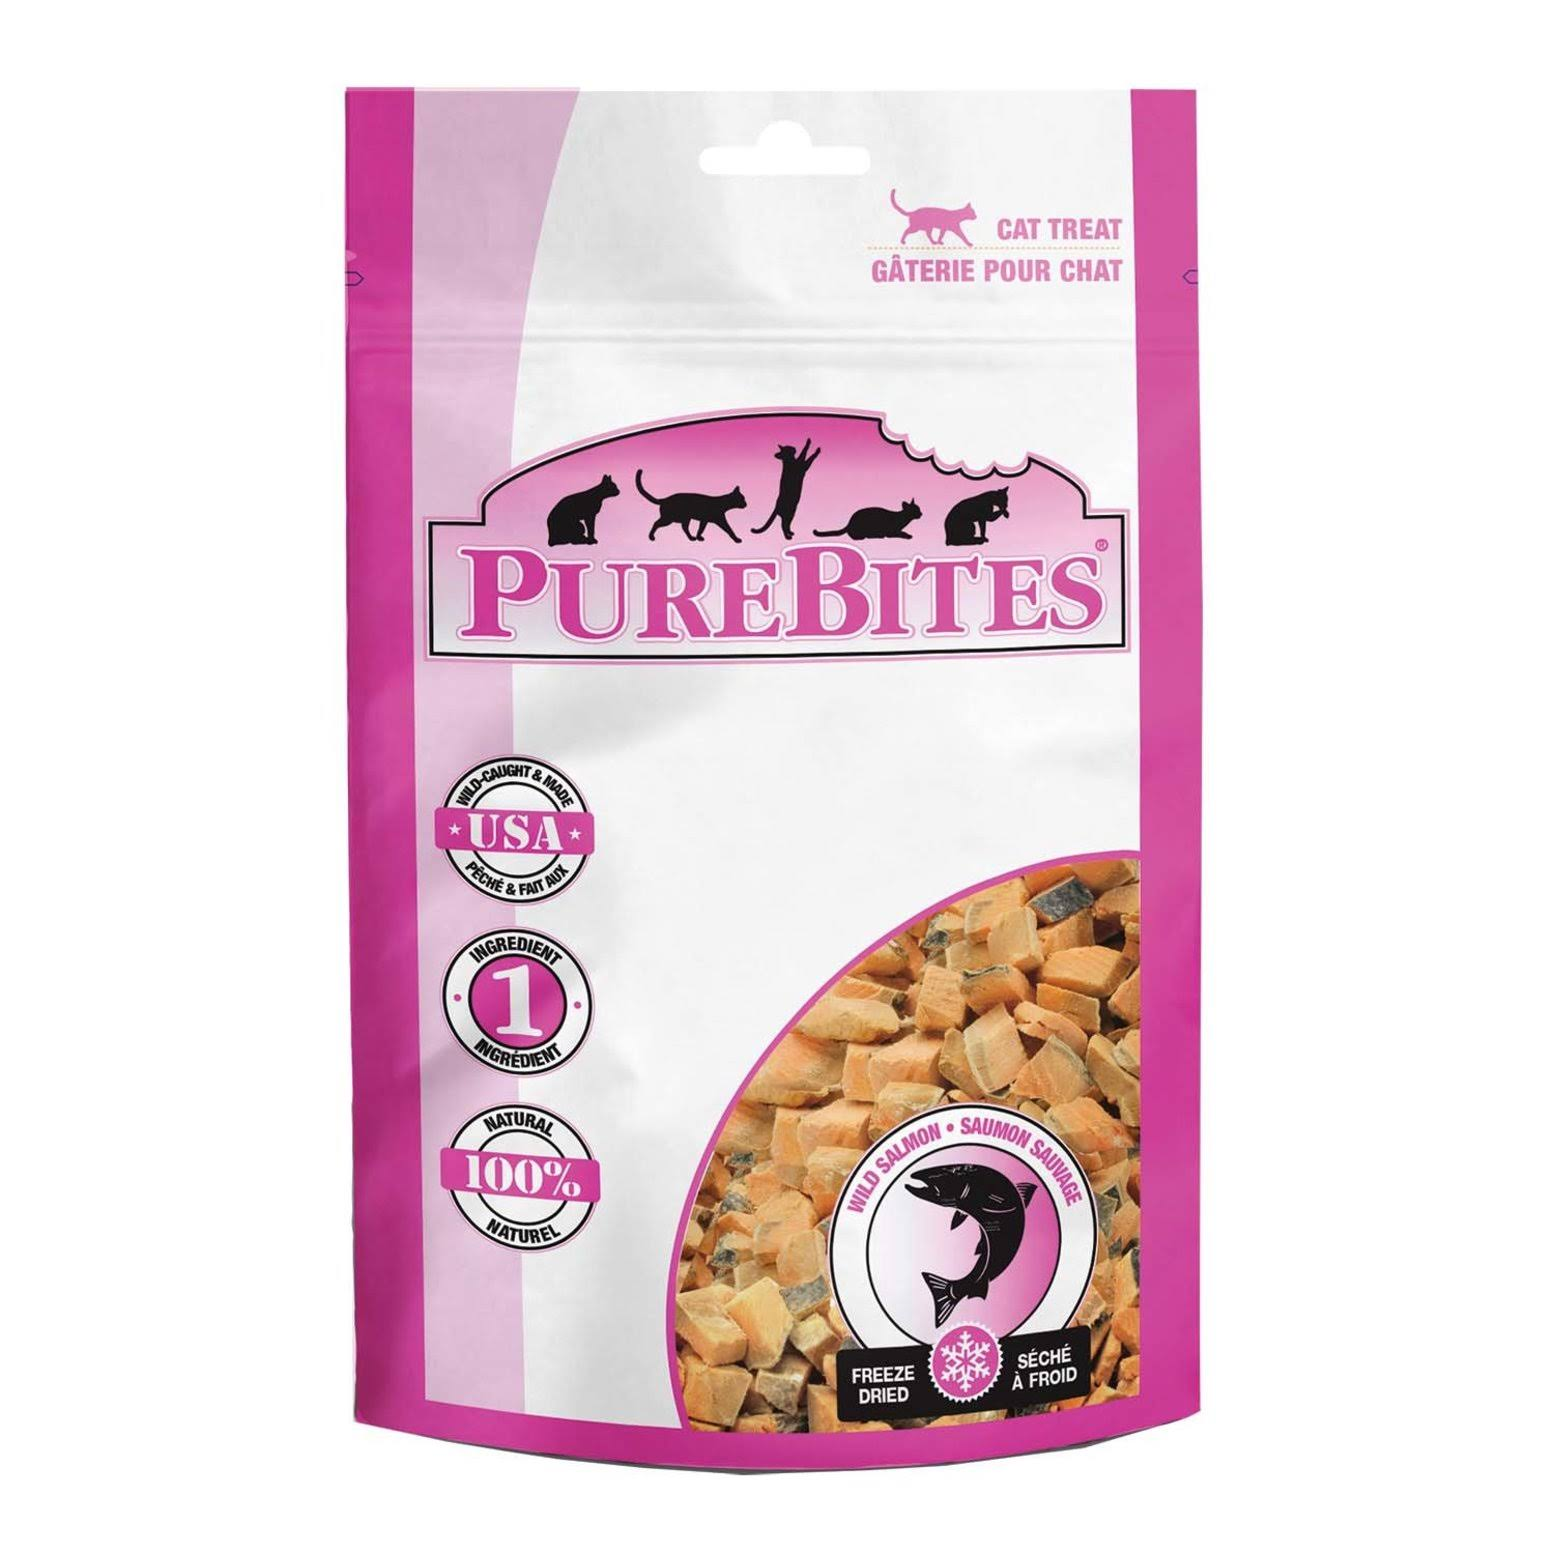 PureBites Salmon Flavored Cat Treats, 2-oz Bag